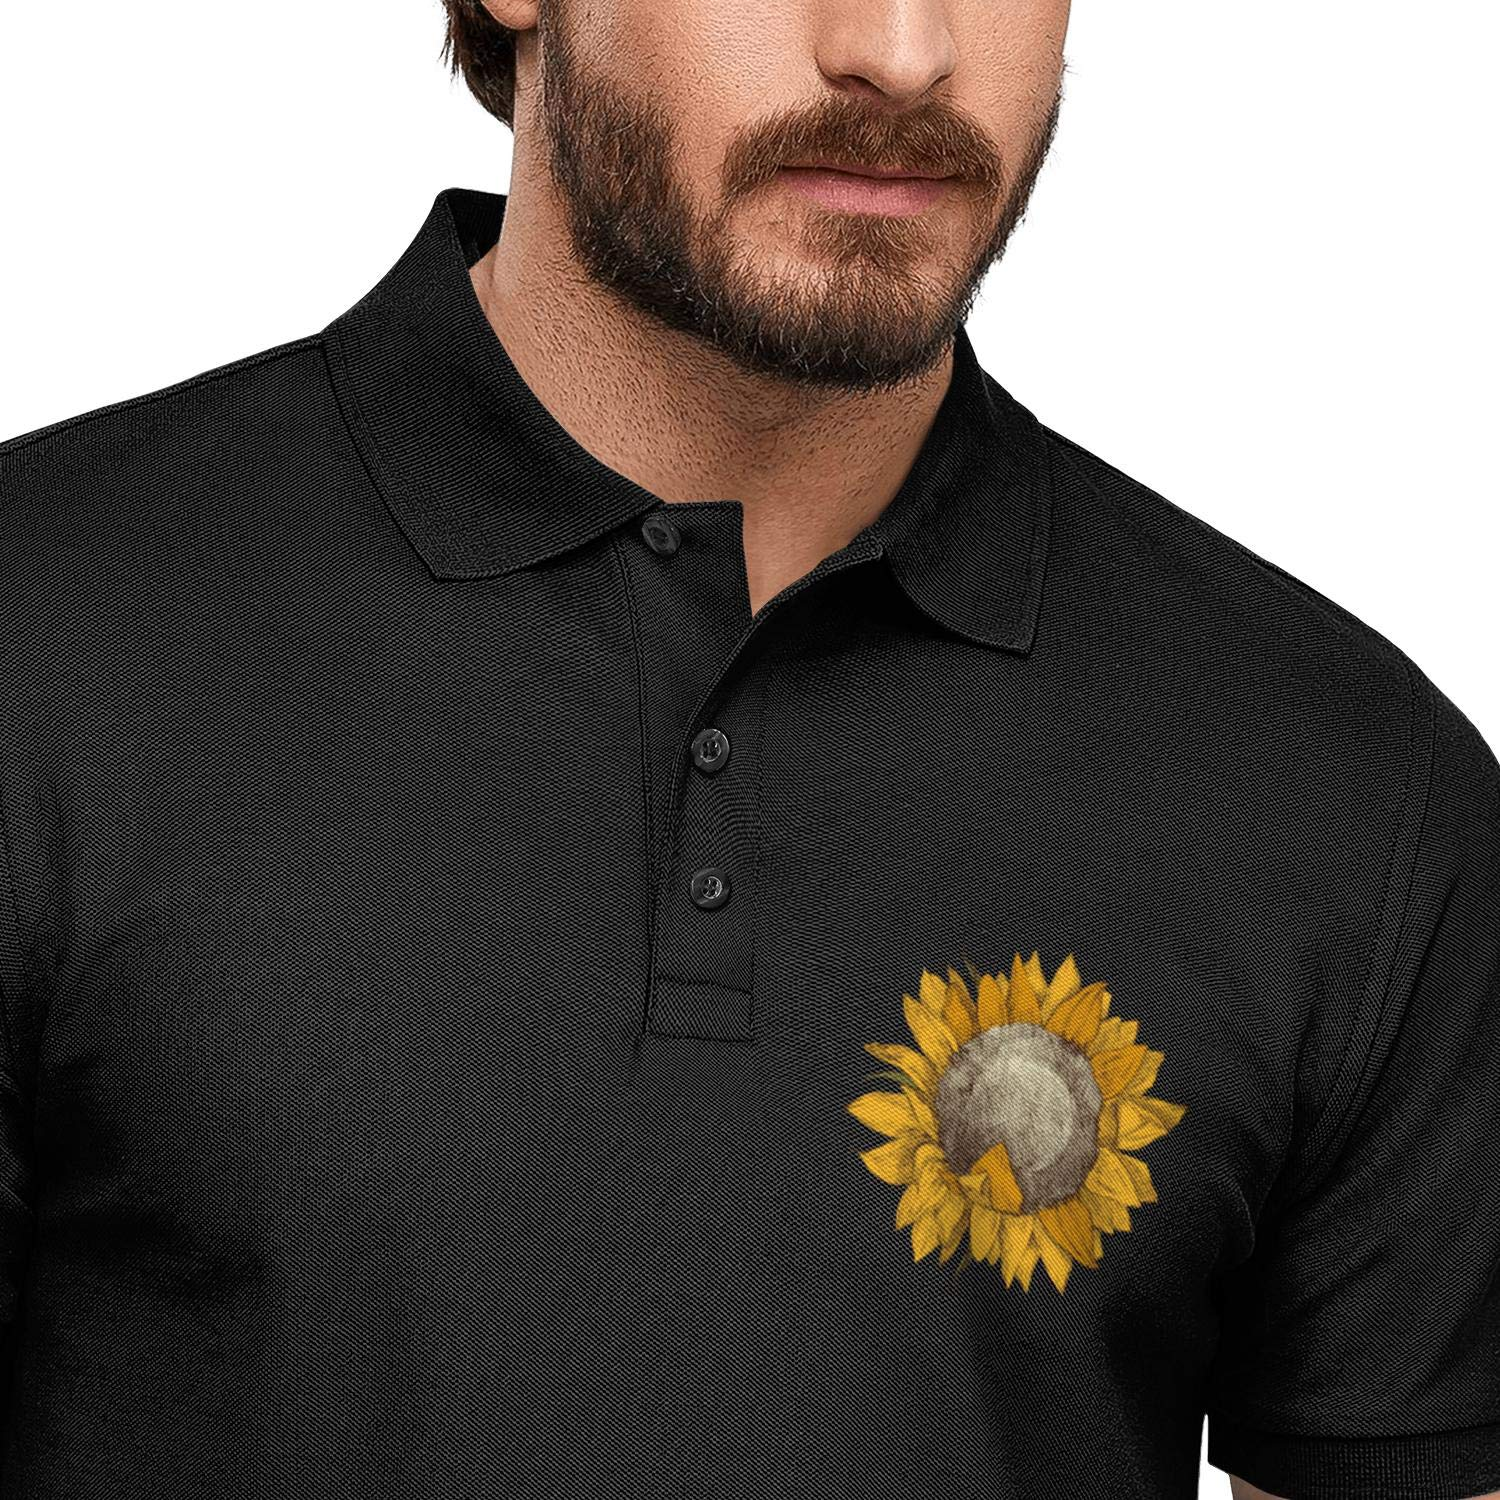 WYFEN Men Printed Polo Shirt Vintage Giant Mexican Yellow Sunflowers Funny Short Sleeve Tshirts